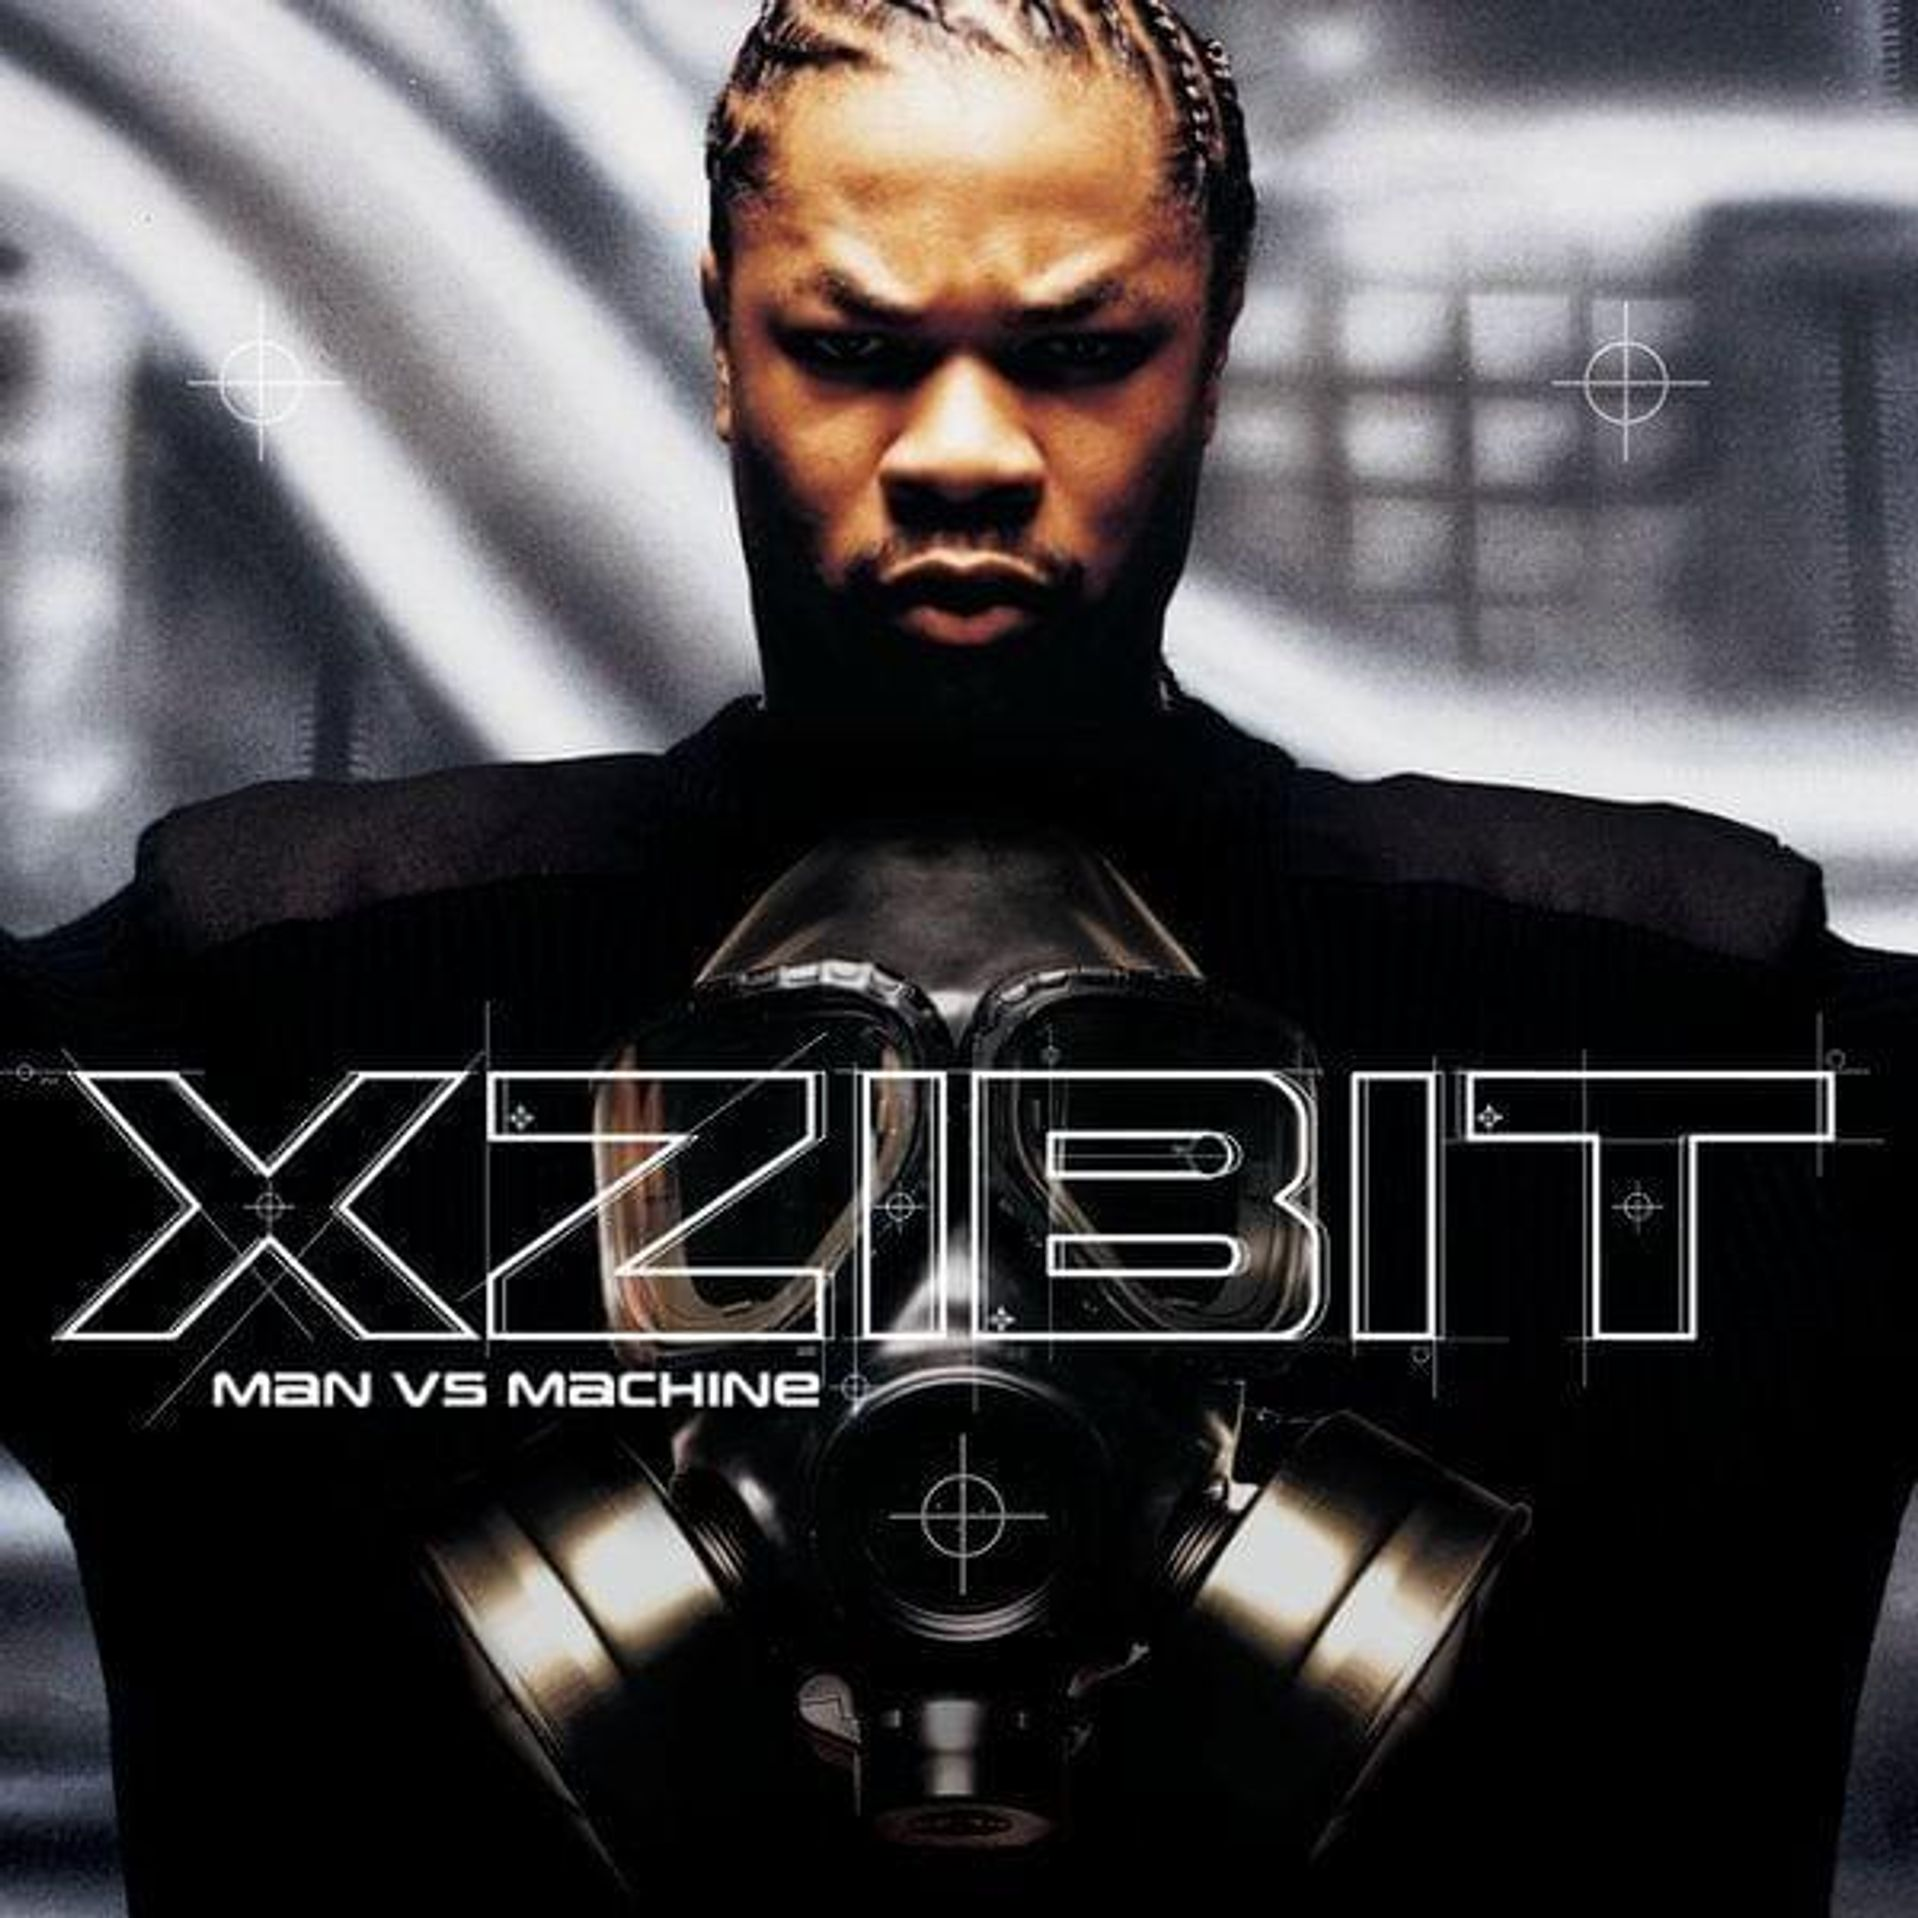 Album Title: Man vs Machine by: Xzibit